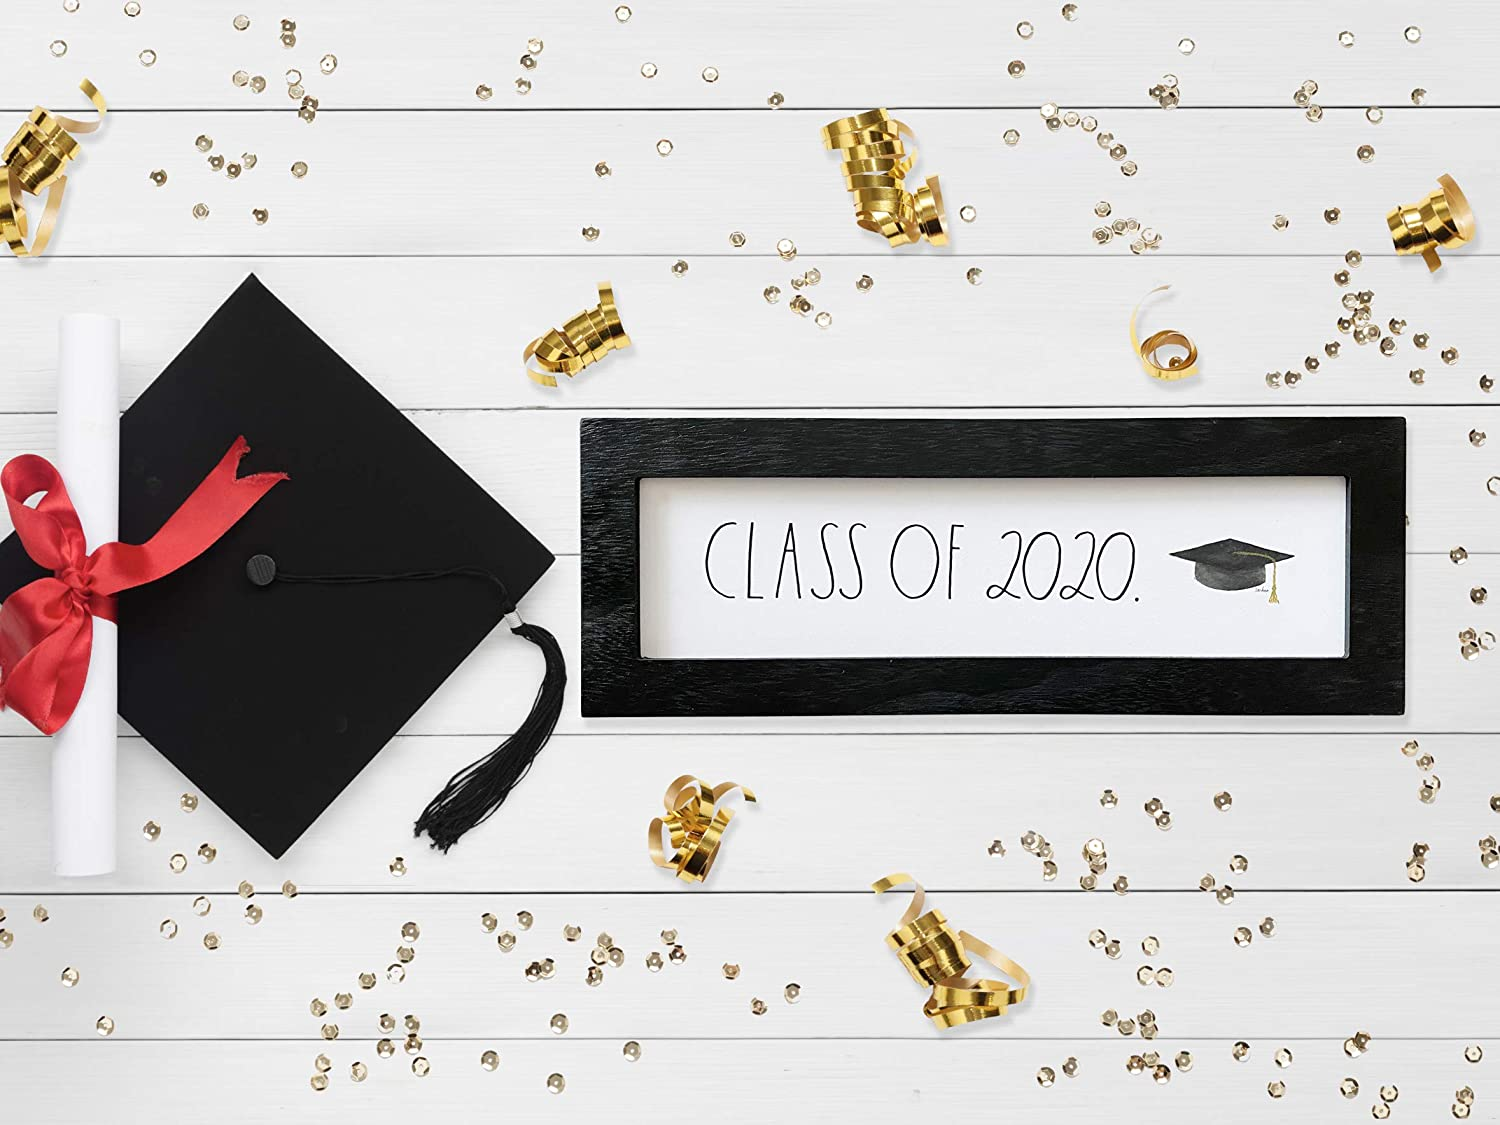 Graduation 2020 Desk Plaque – Home, Office Decor - Cute Inspirational Messages, Quotes - Distressed Wood Frame - Rustic, Country, Industrial, Farmhouse, Wooden, Vintage Design Style – by Rae Dunn: Everything Else